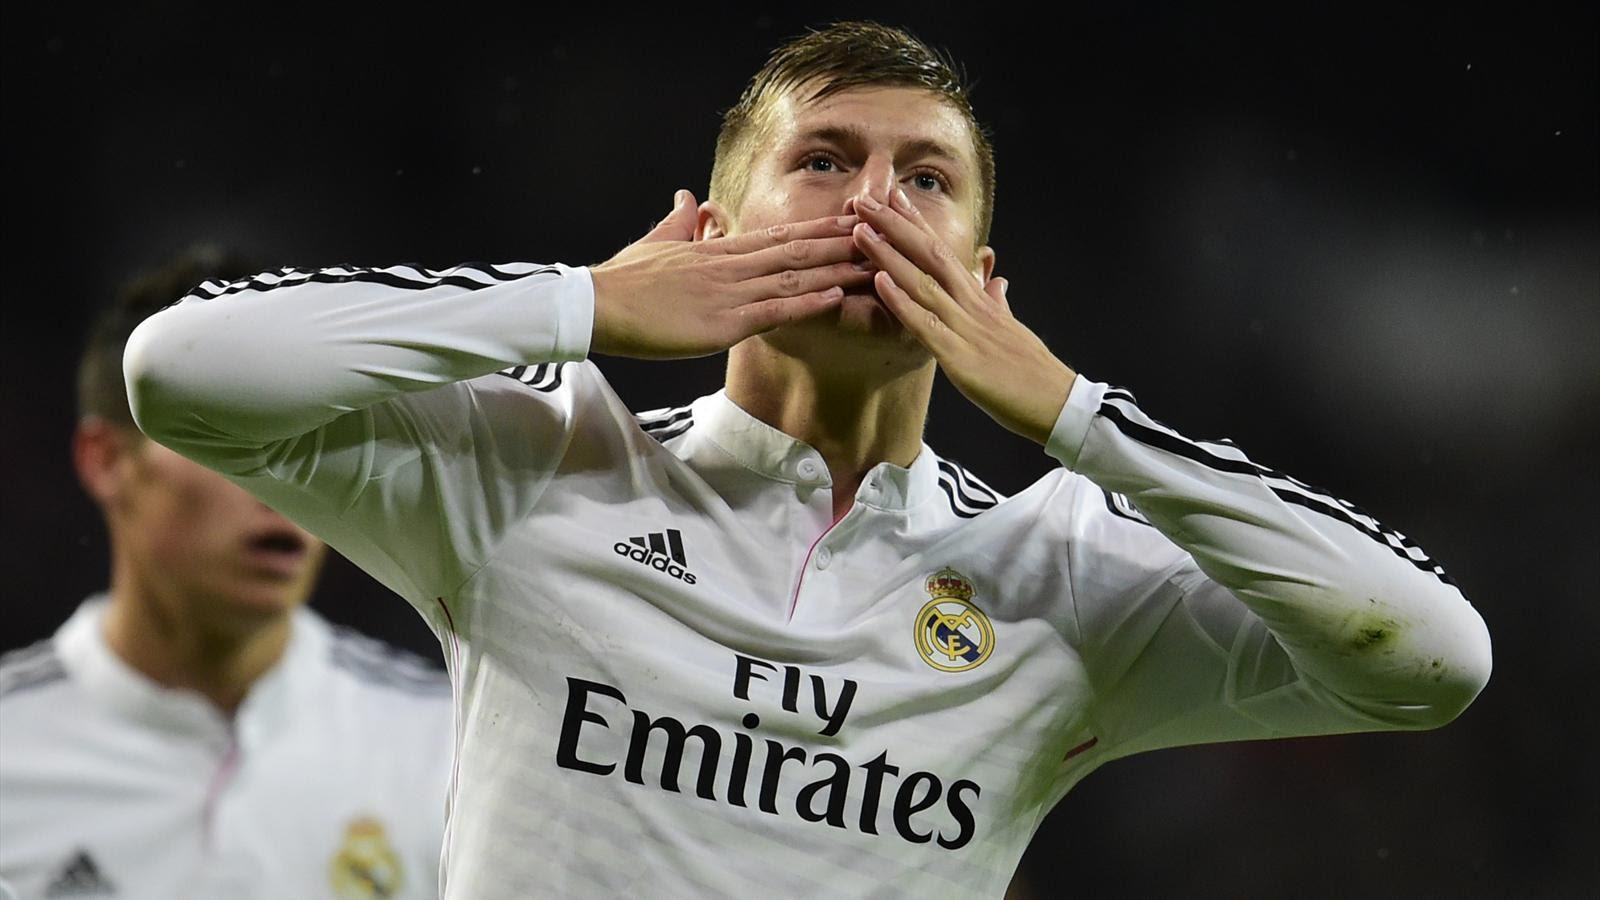 Desktop Toni Kroos Football Soccer Player Free Kiss To Audiance Mobile Hd Background Download Wallpaper Photos